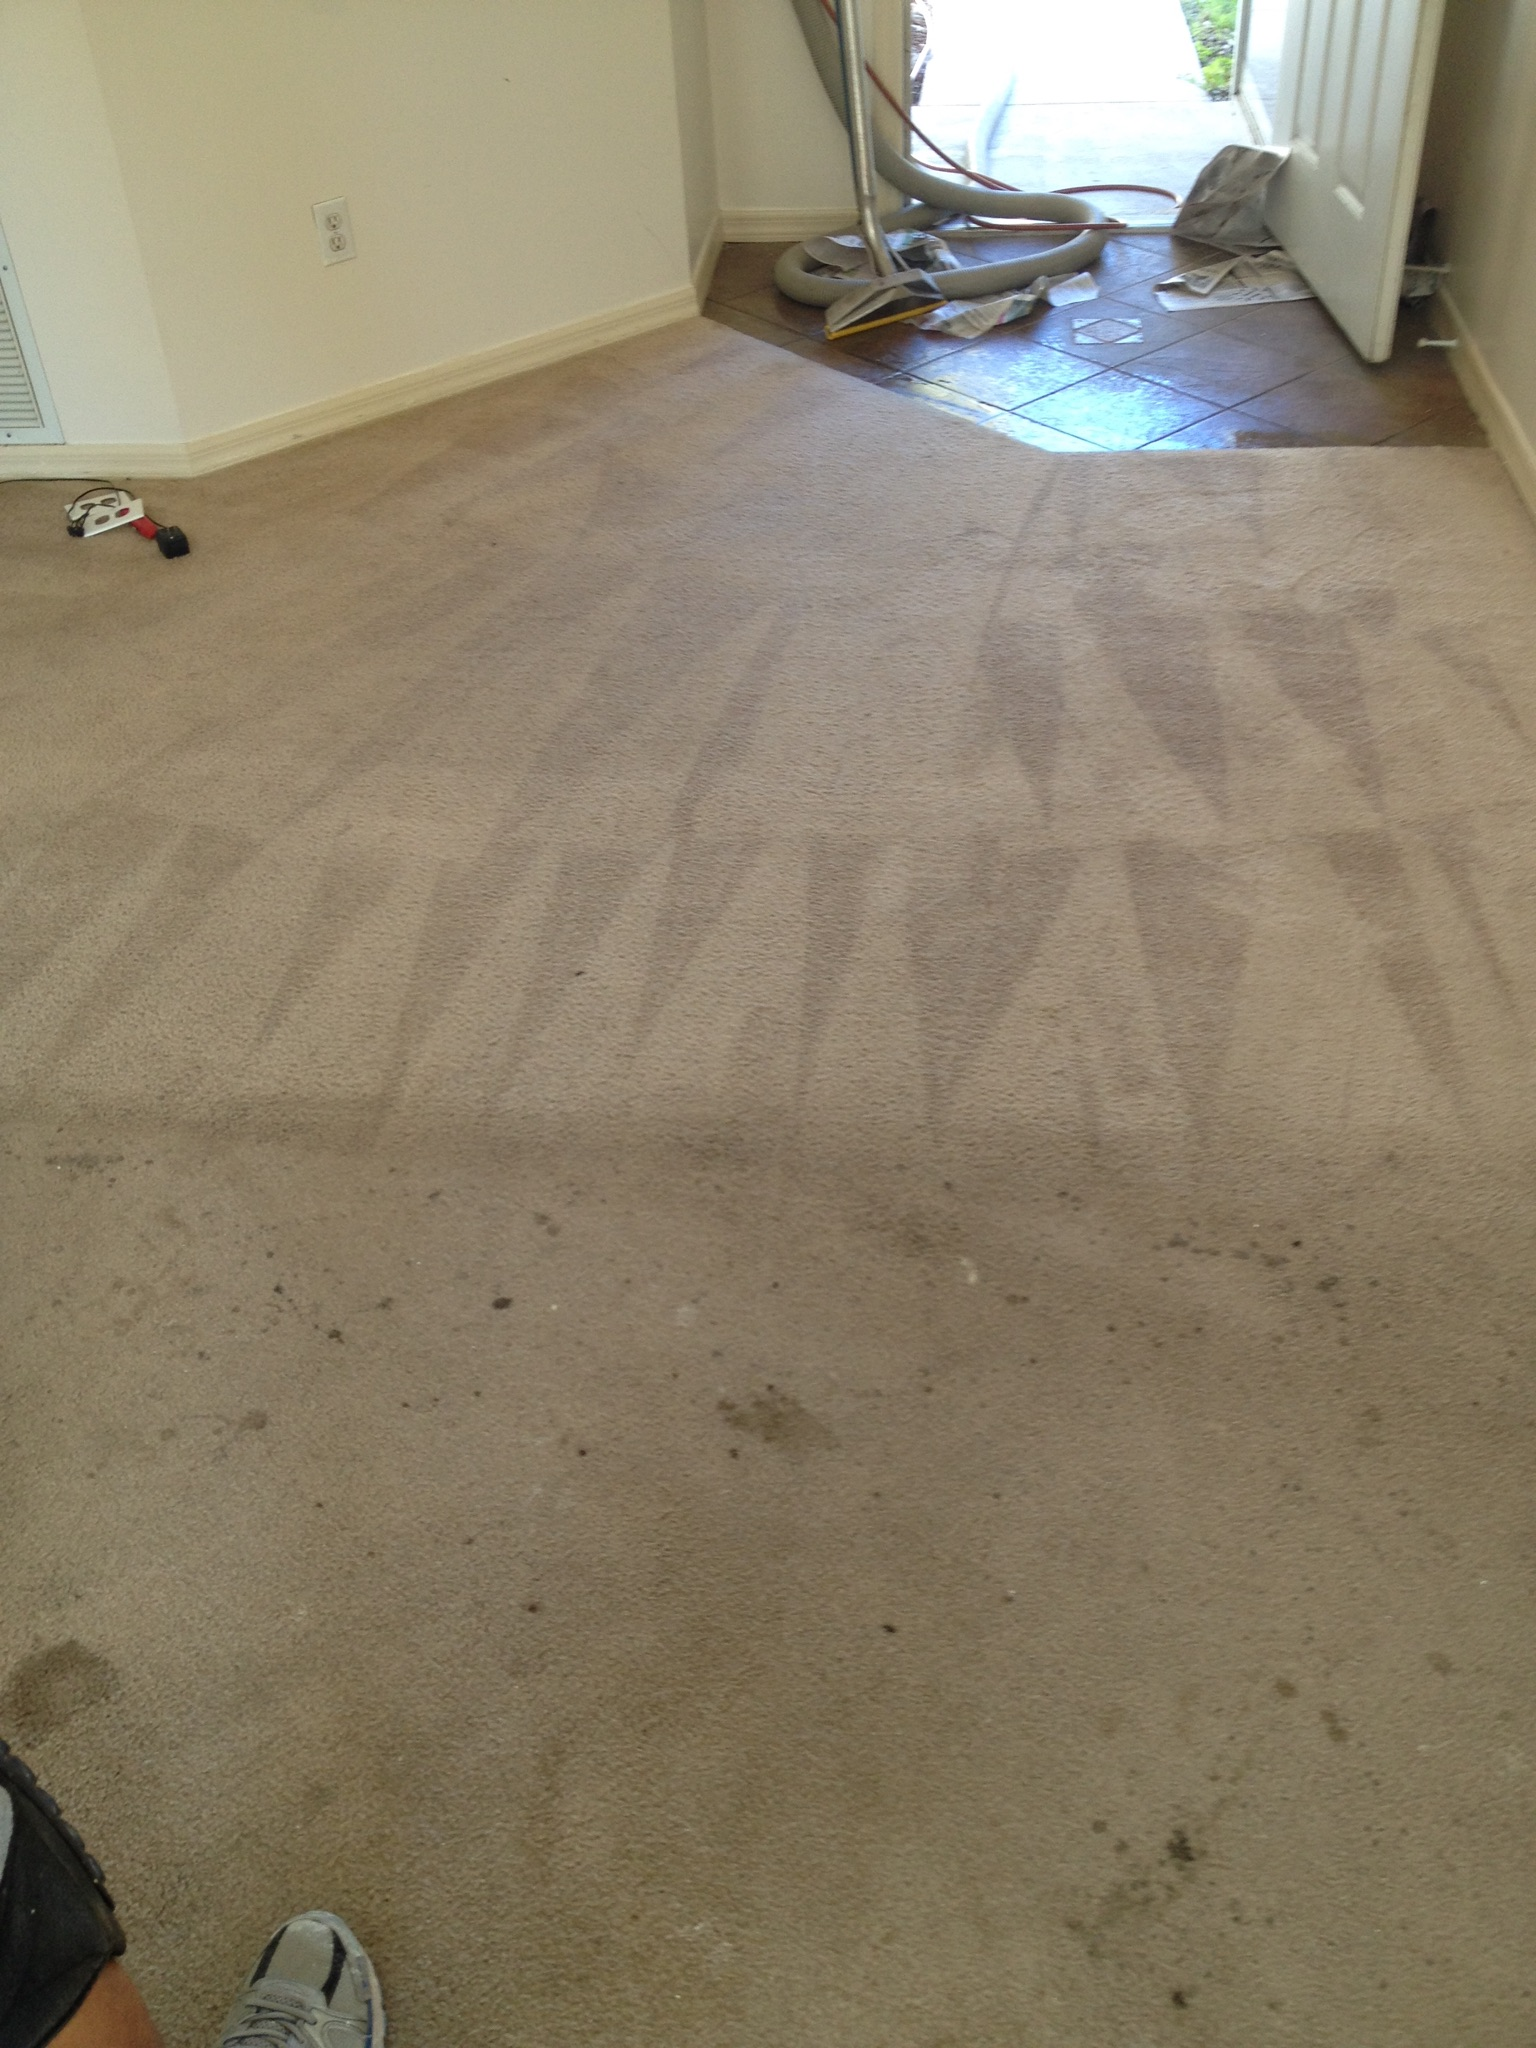 CARPET CLEANING - DURING